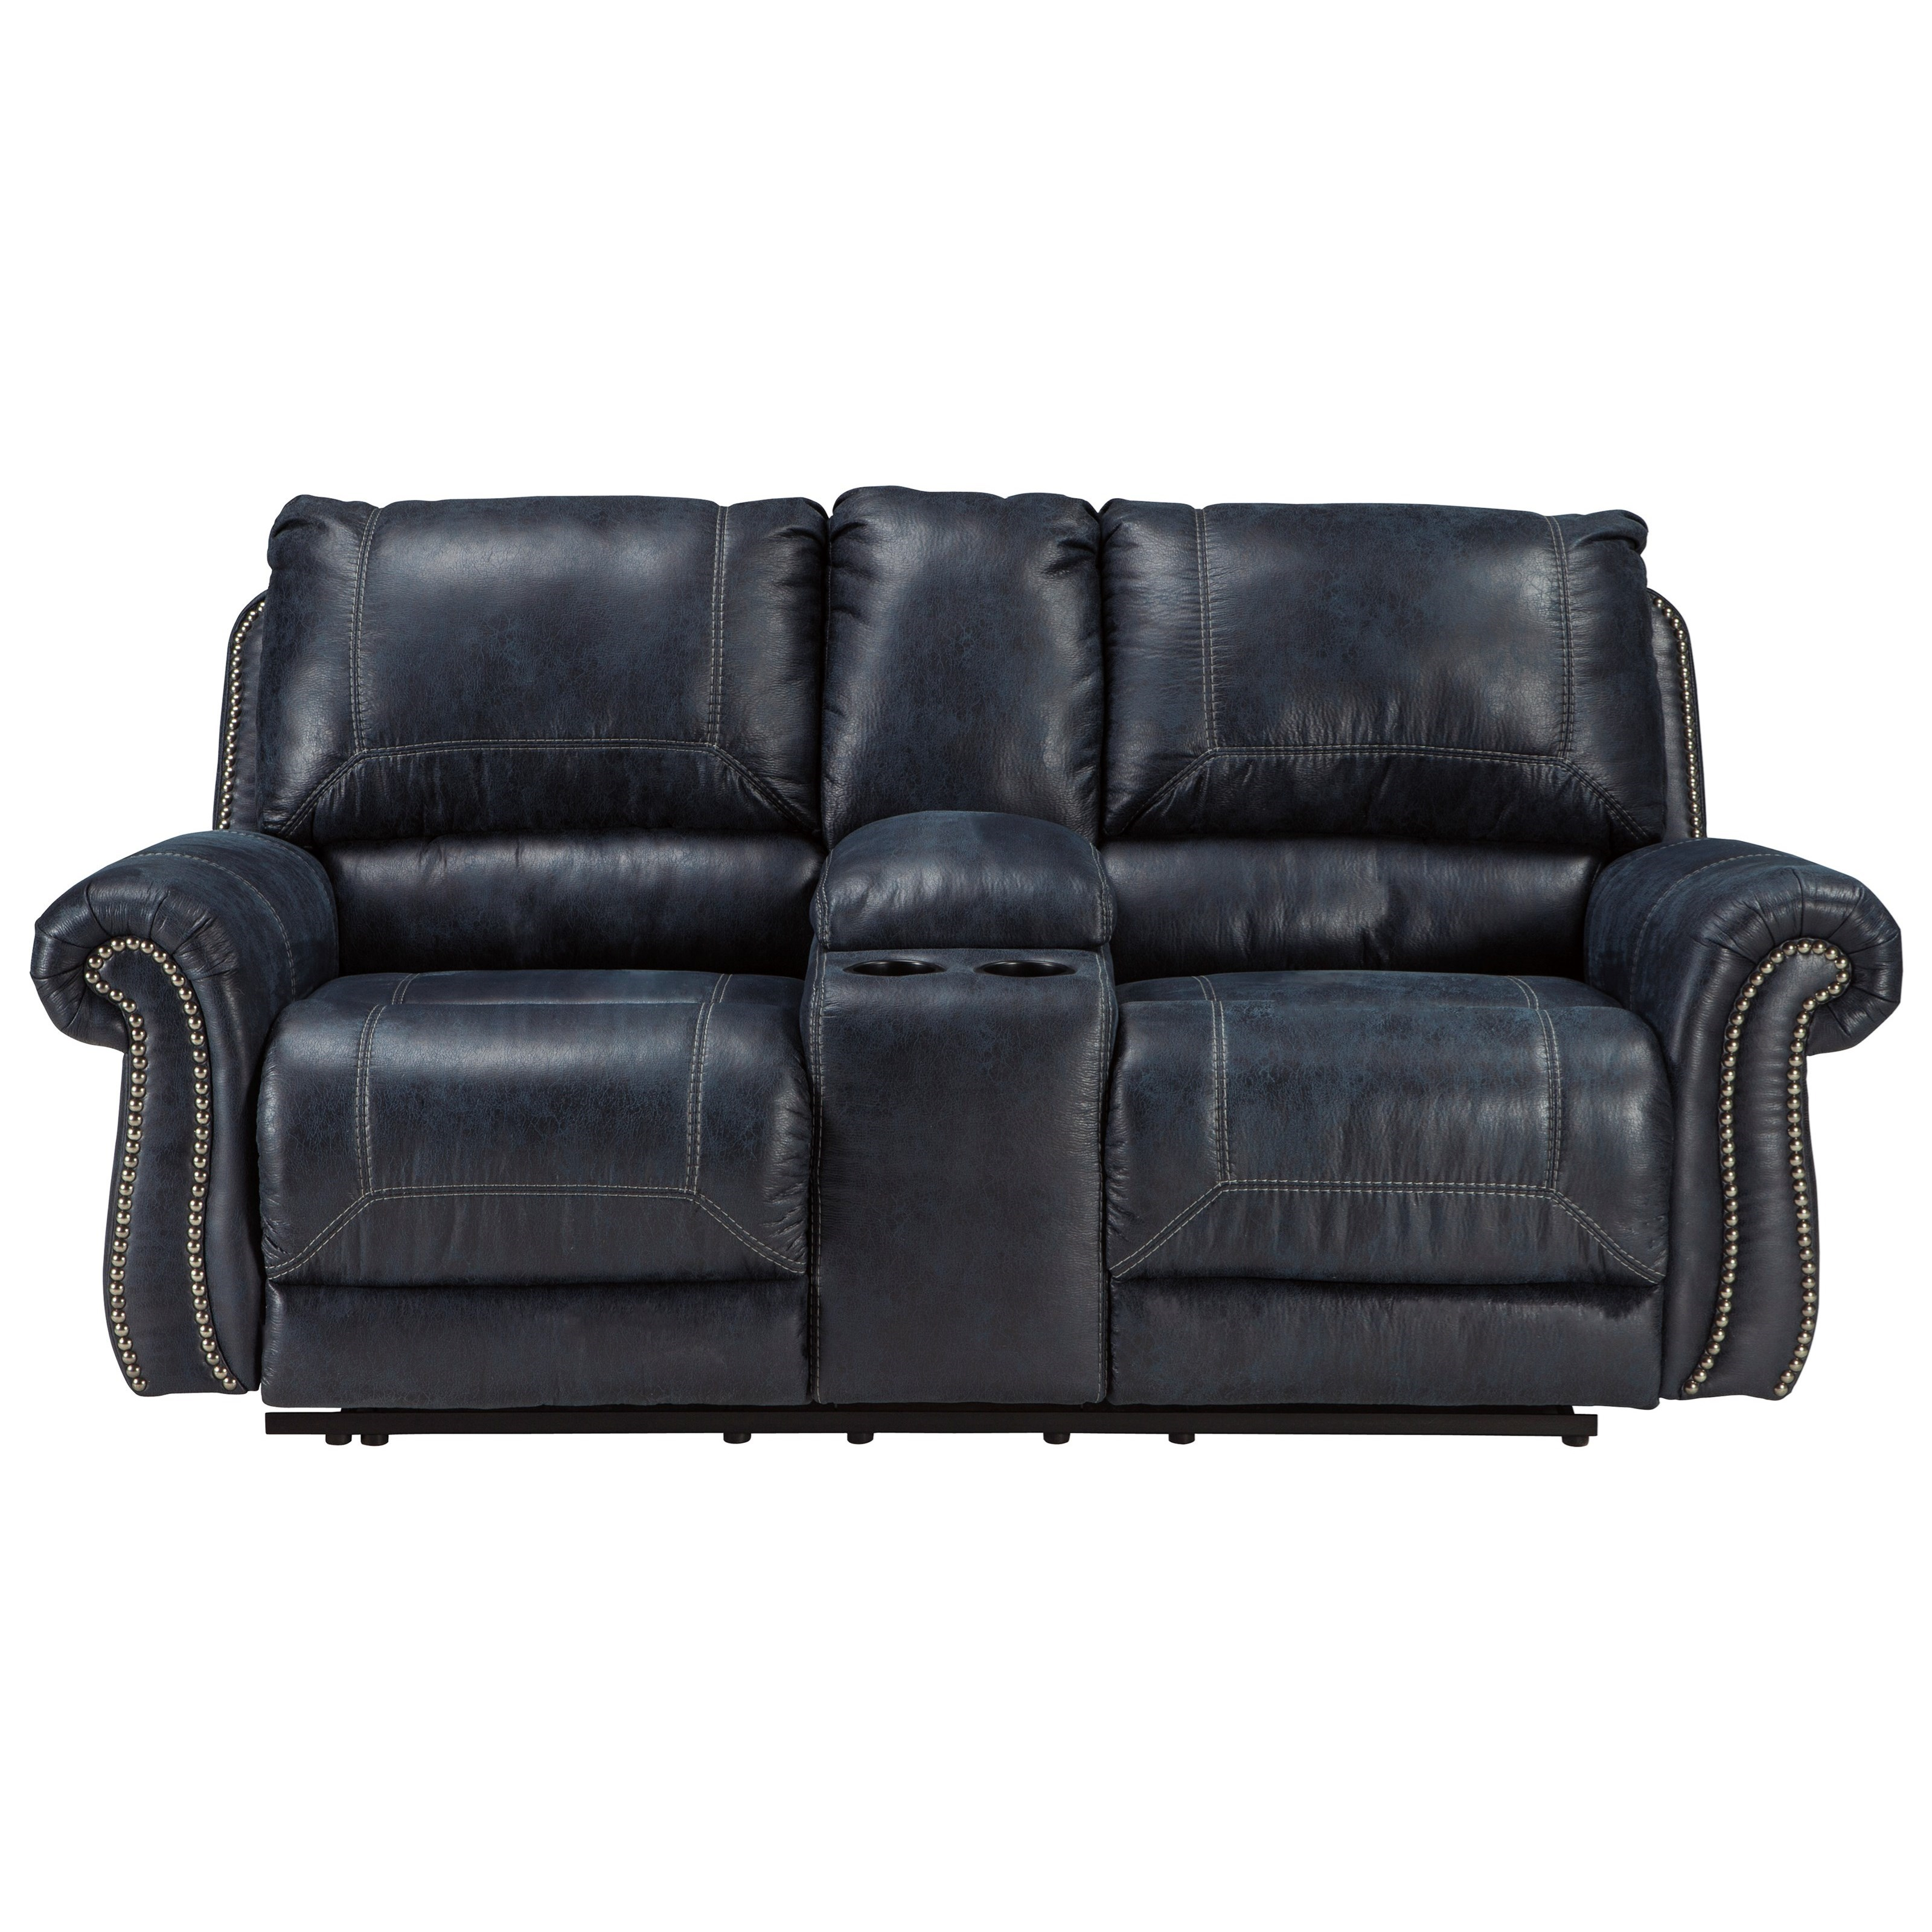 Signature Design by Ashley Milhaven Double Reclining Power Loveseat w/ Console - Item Number: 6330496